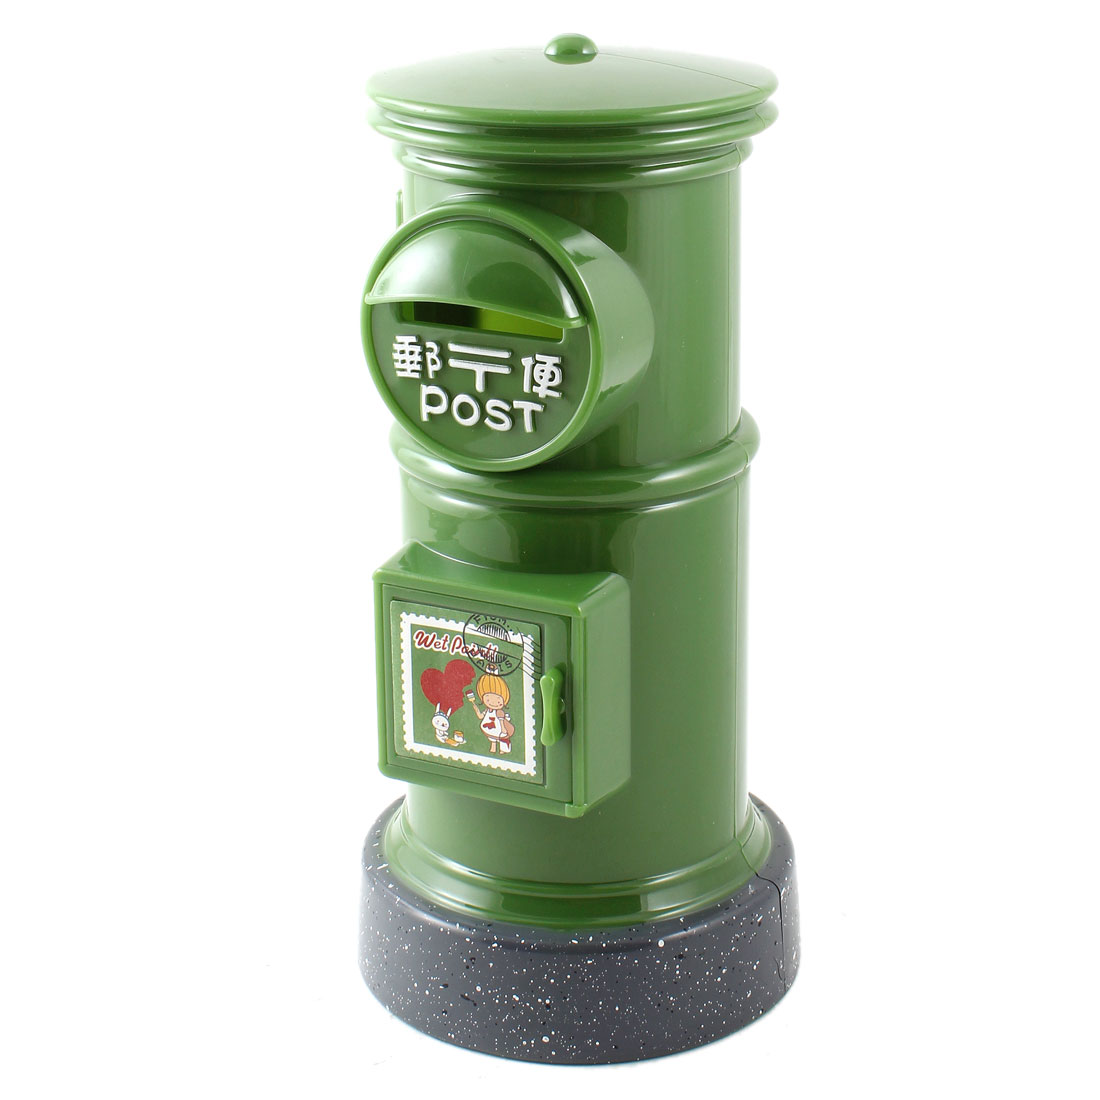 Postbox Style Rotatable Bottom Coins Money Piggy Bank Saving Box Green